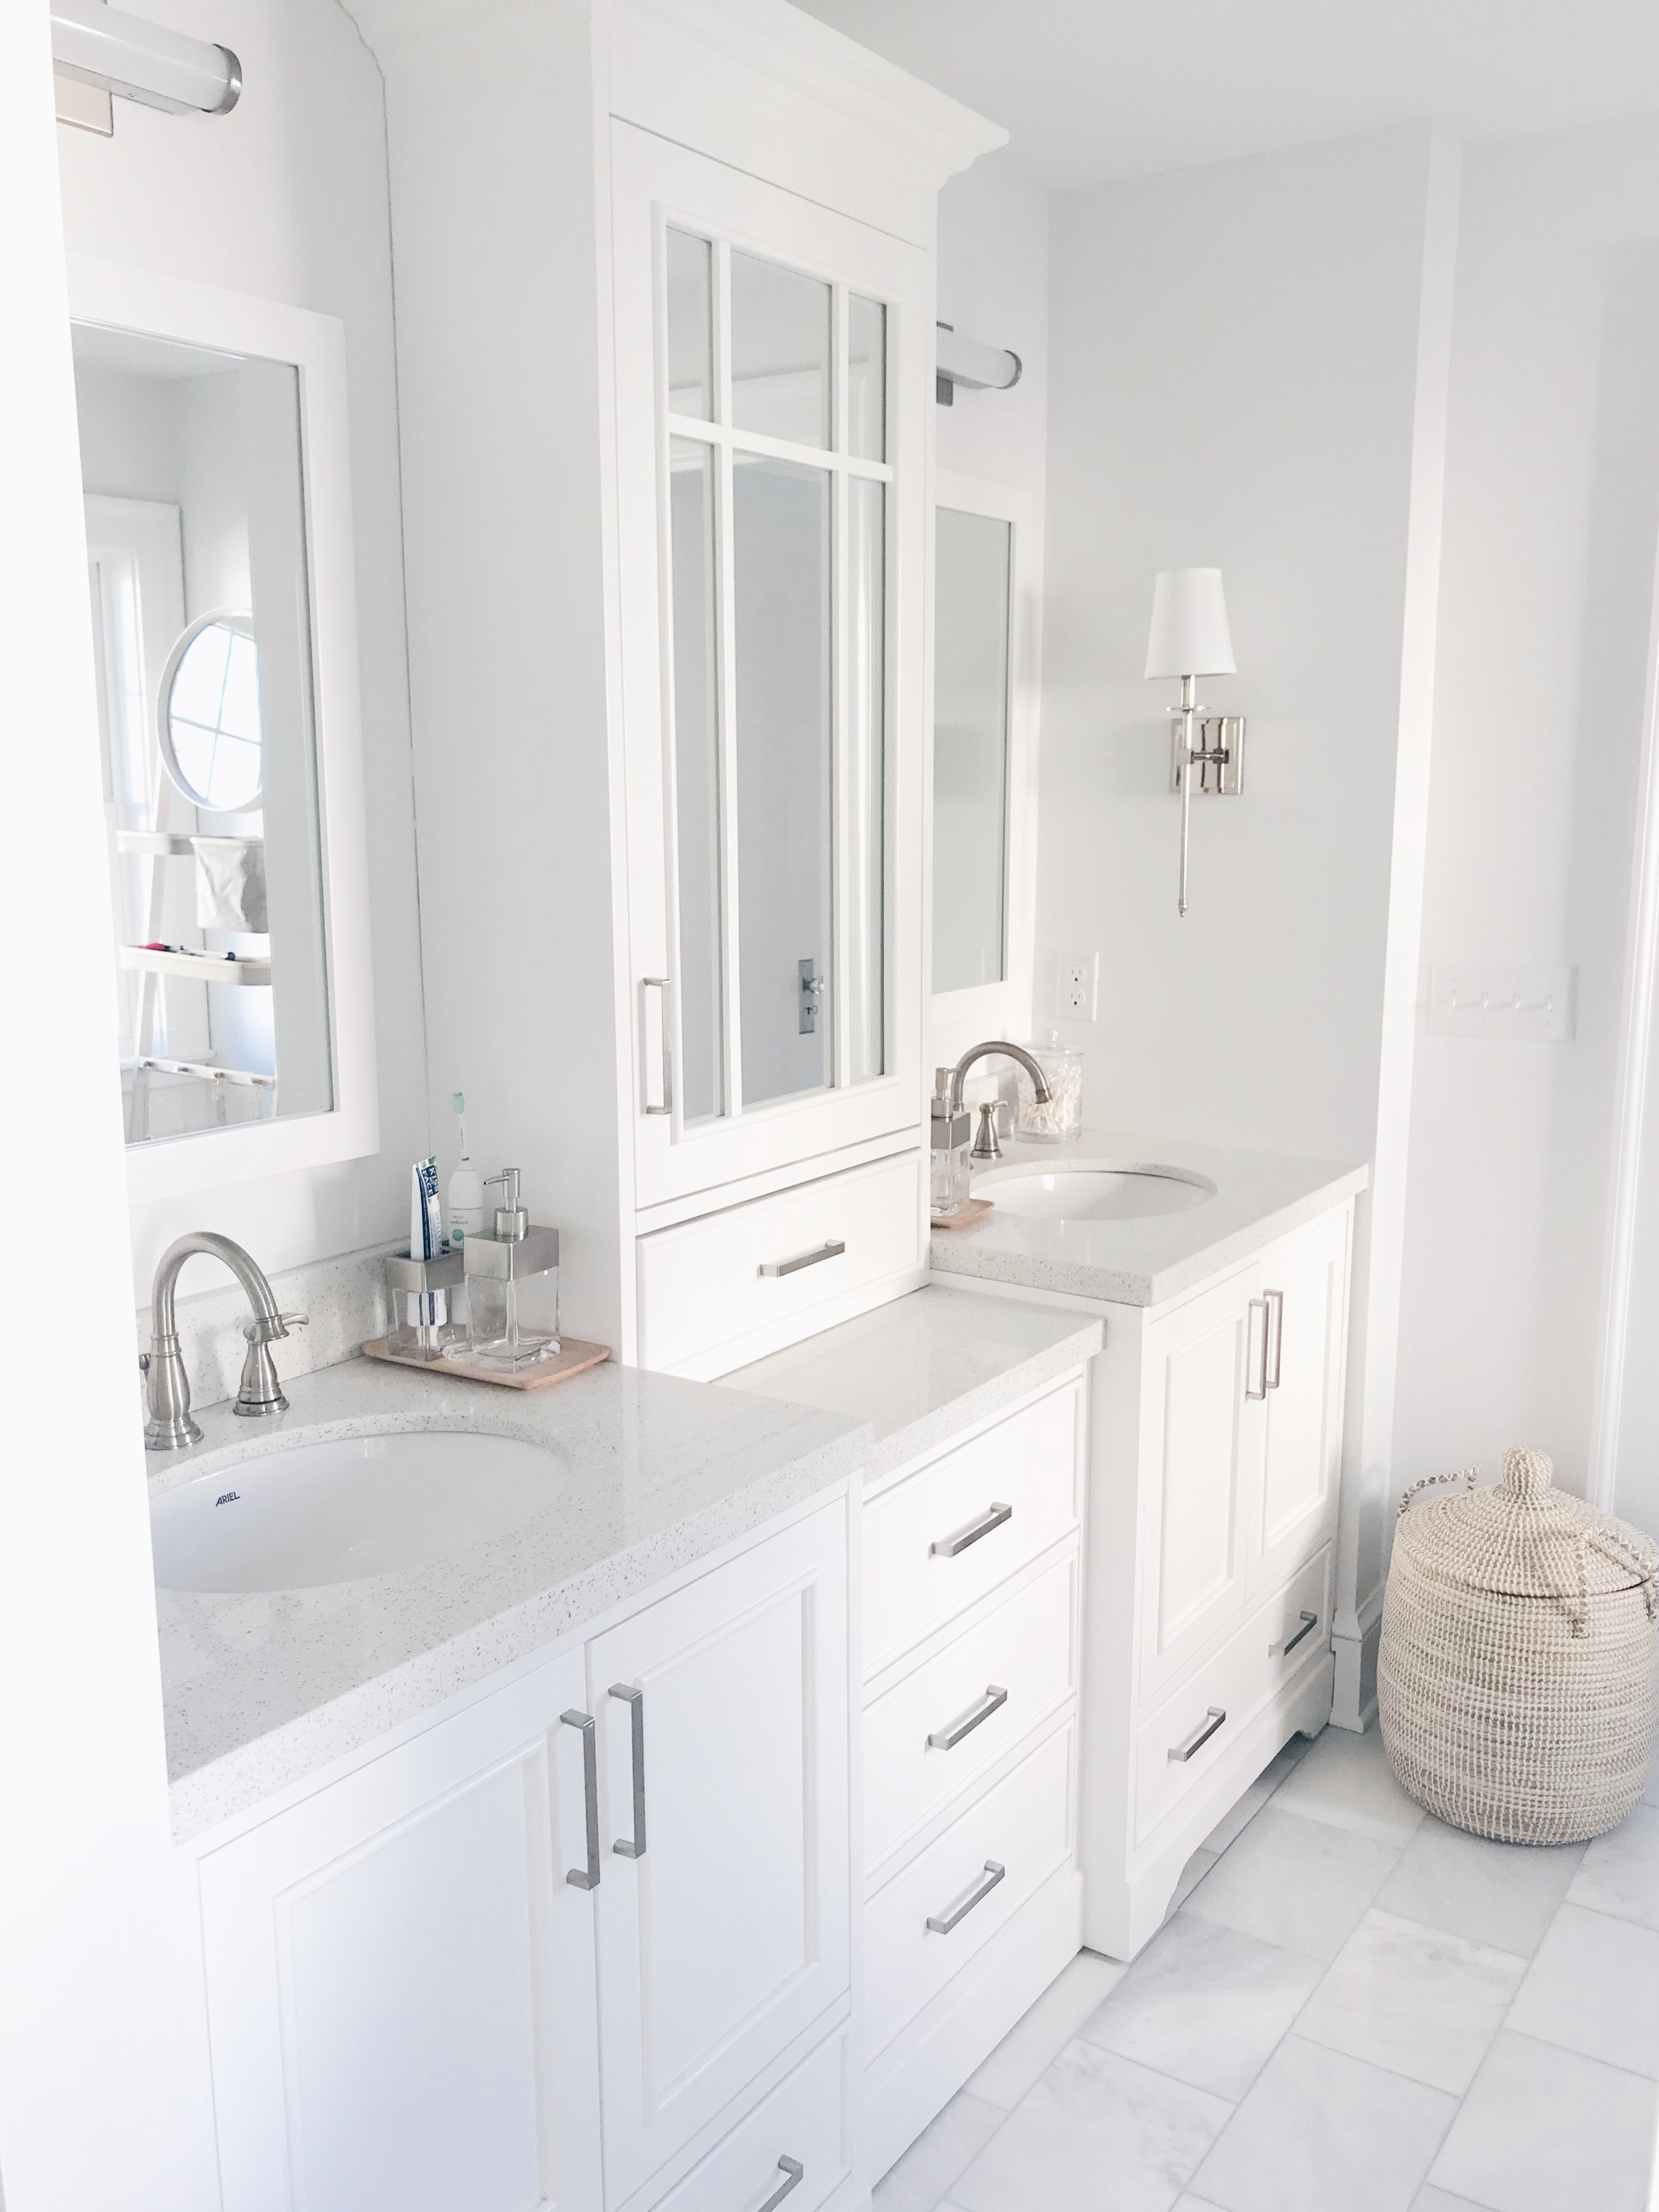 How To Build A Bathroom Vanity Tower Image Of Bathroom And Closet